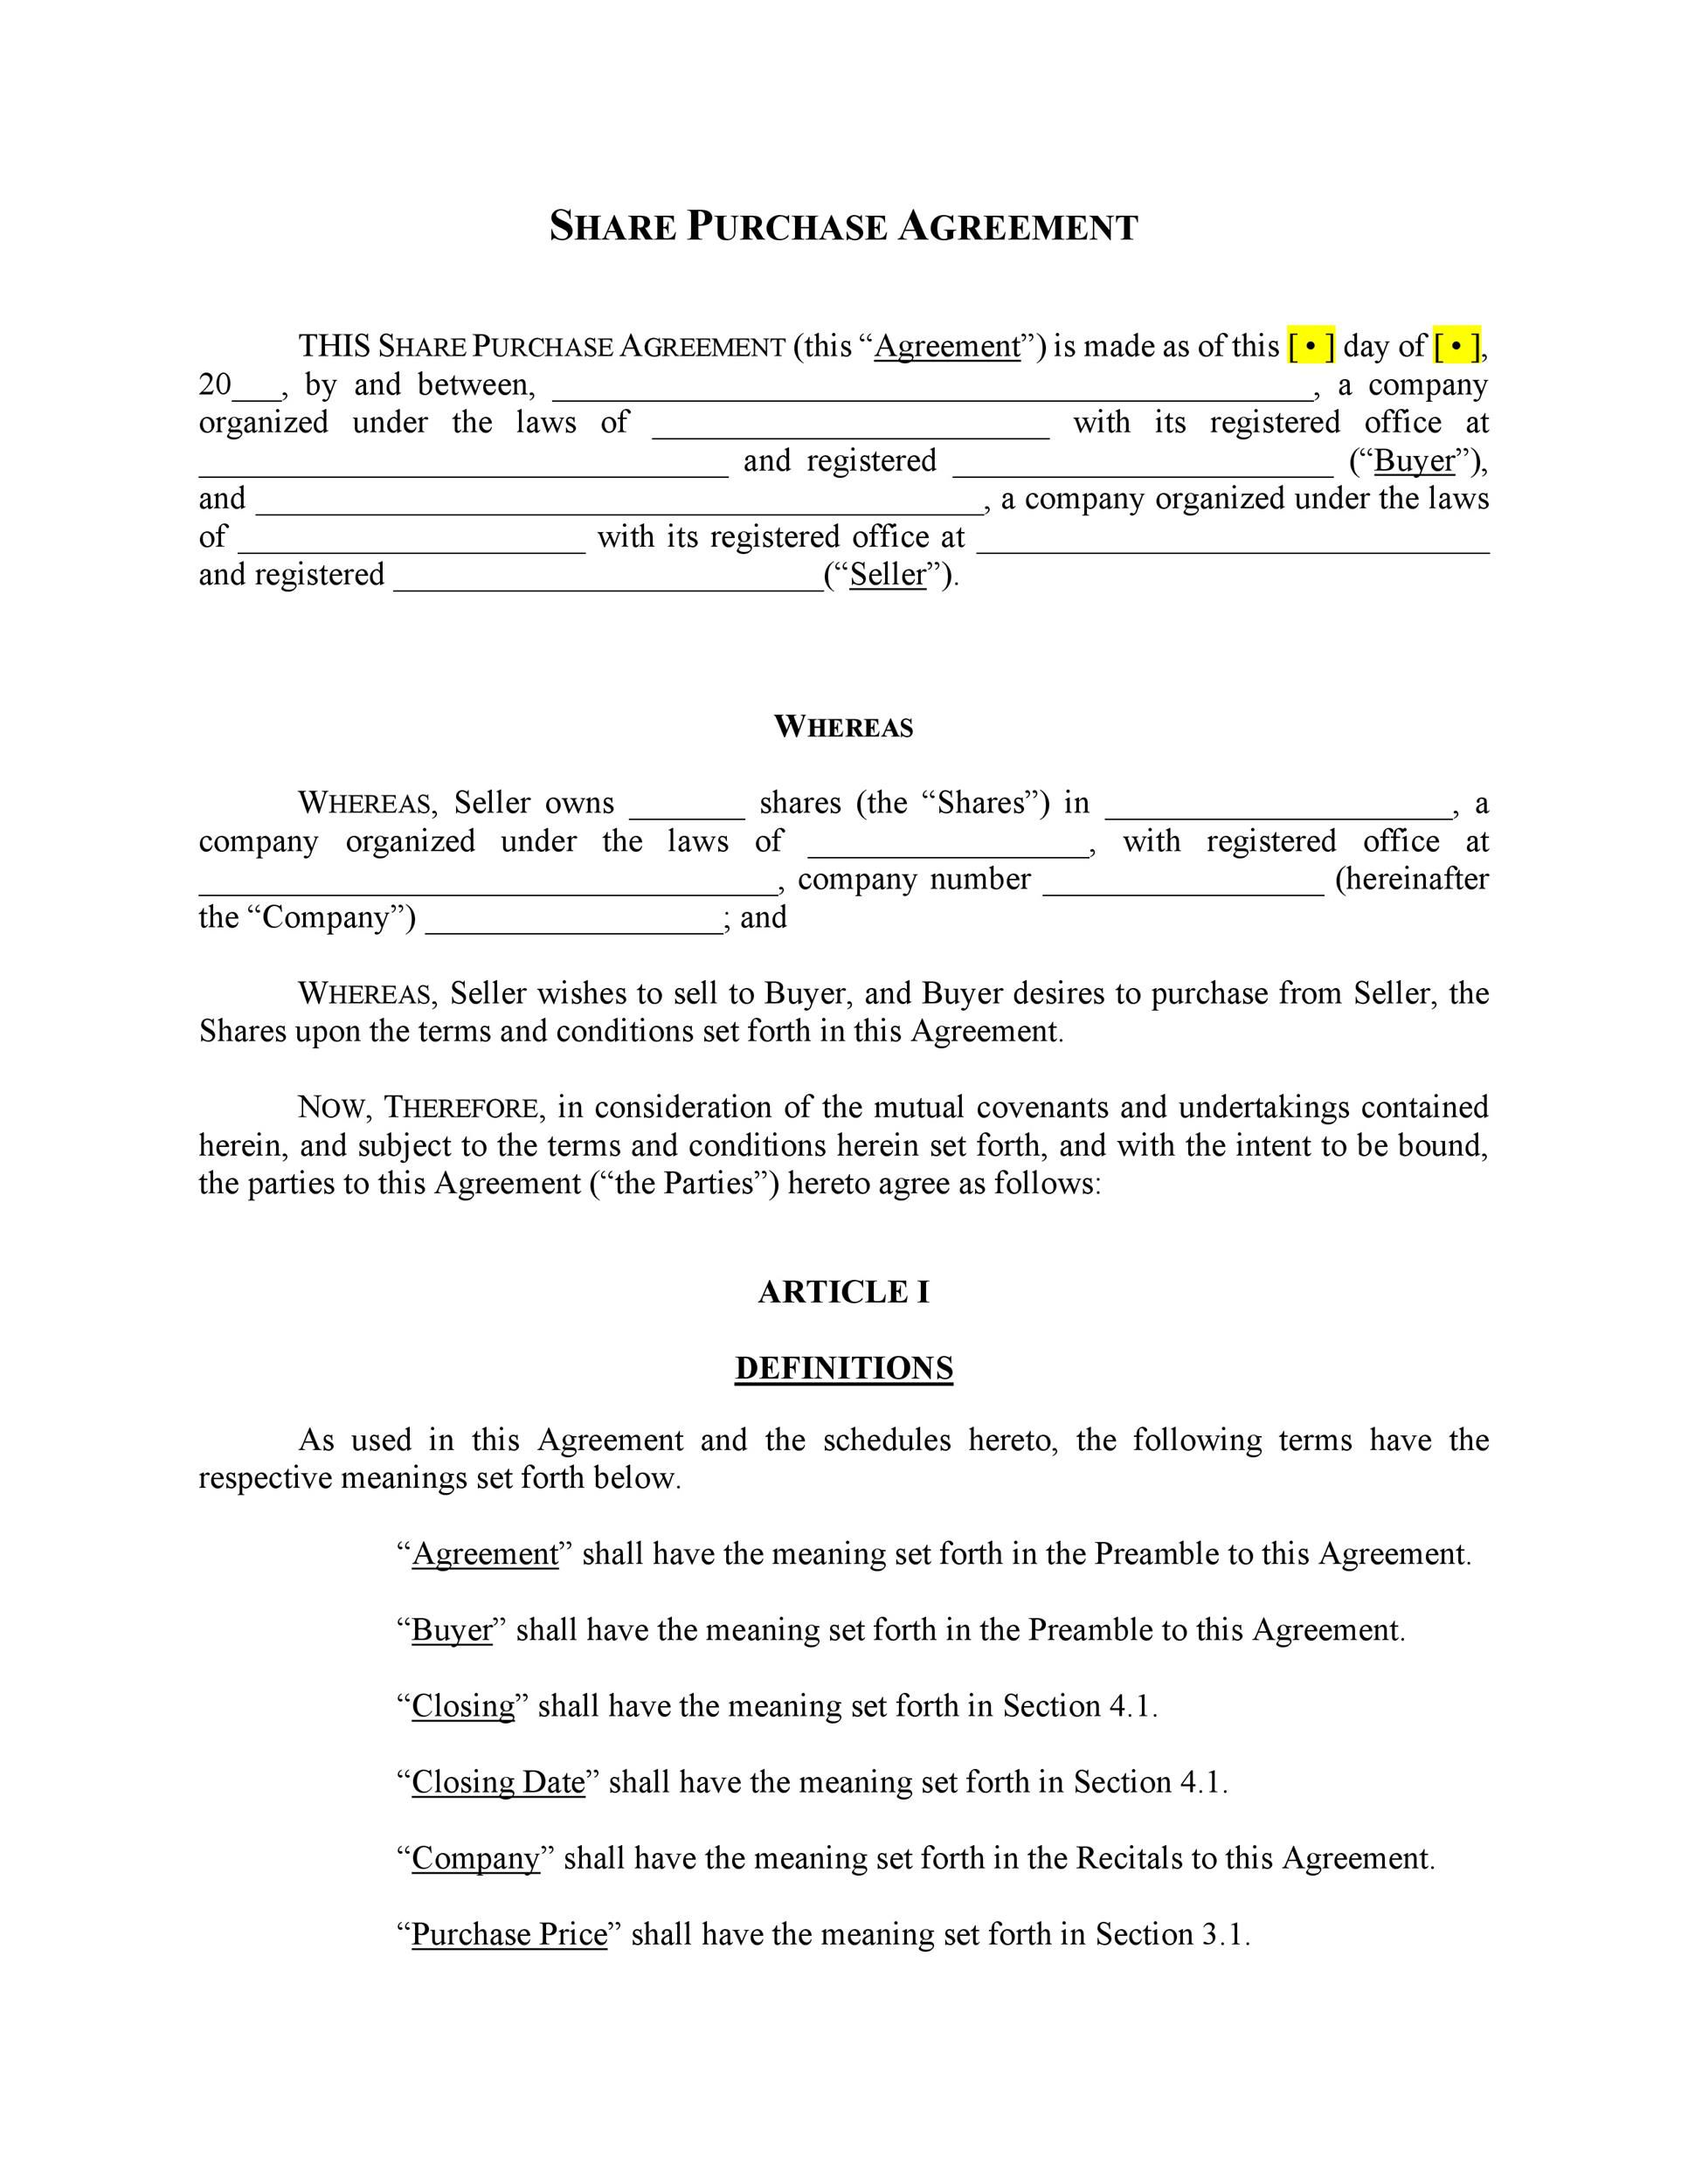 Share Purchase Agreement Template from www.addictionary.org